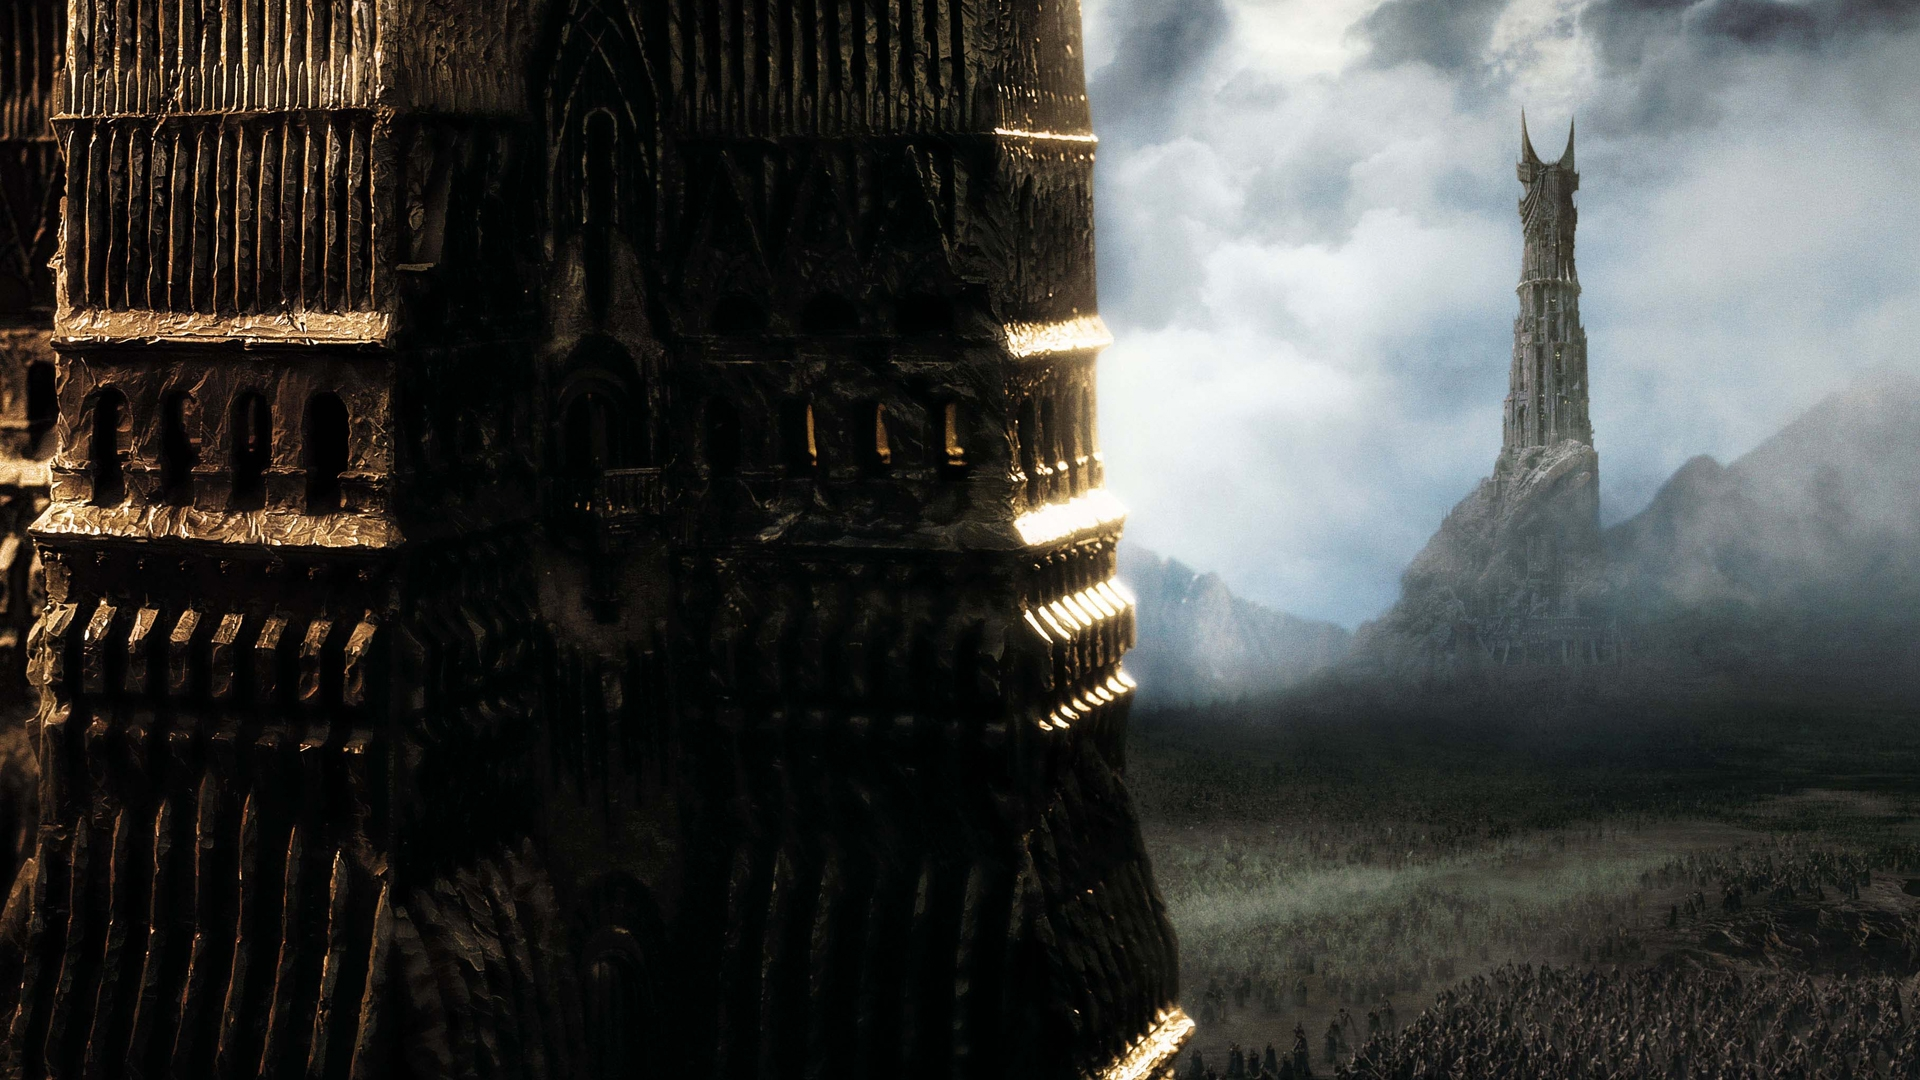 #8) The Lord of the Rings: The Two Towers - (2002 - dir.Peter Jackson)